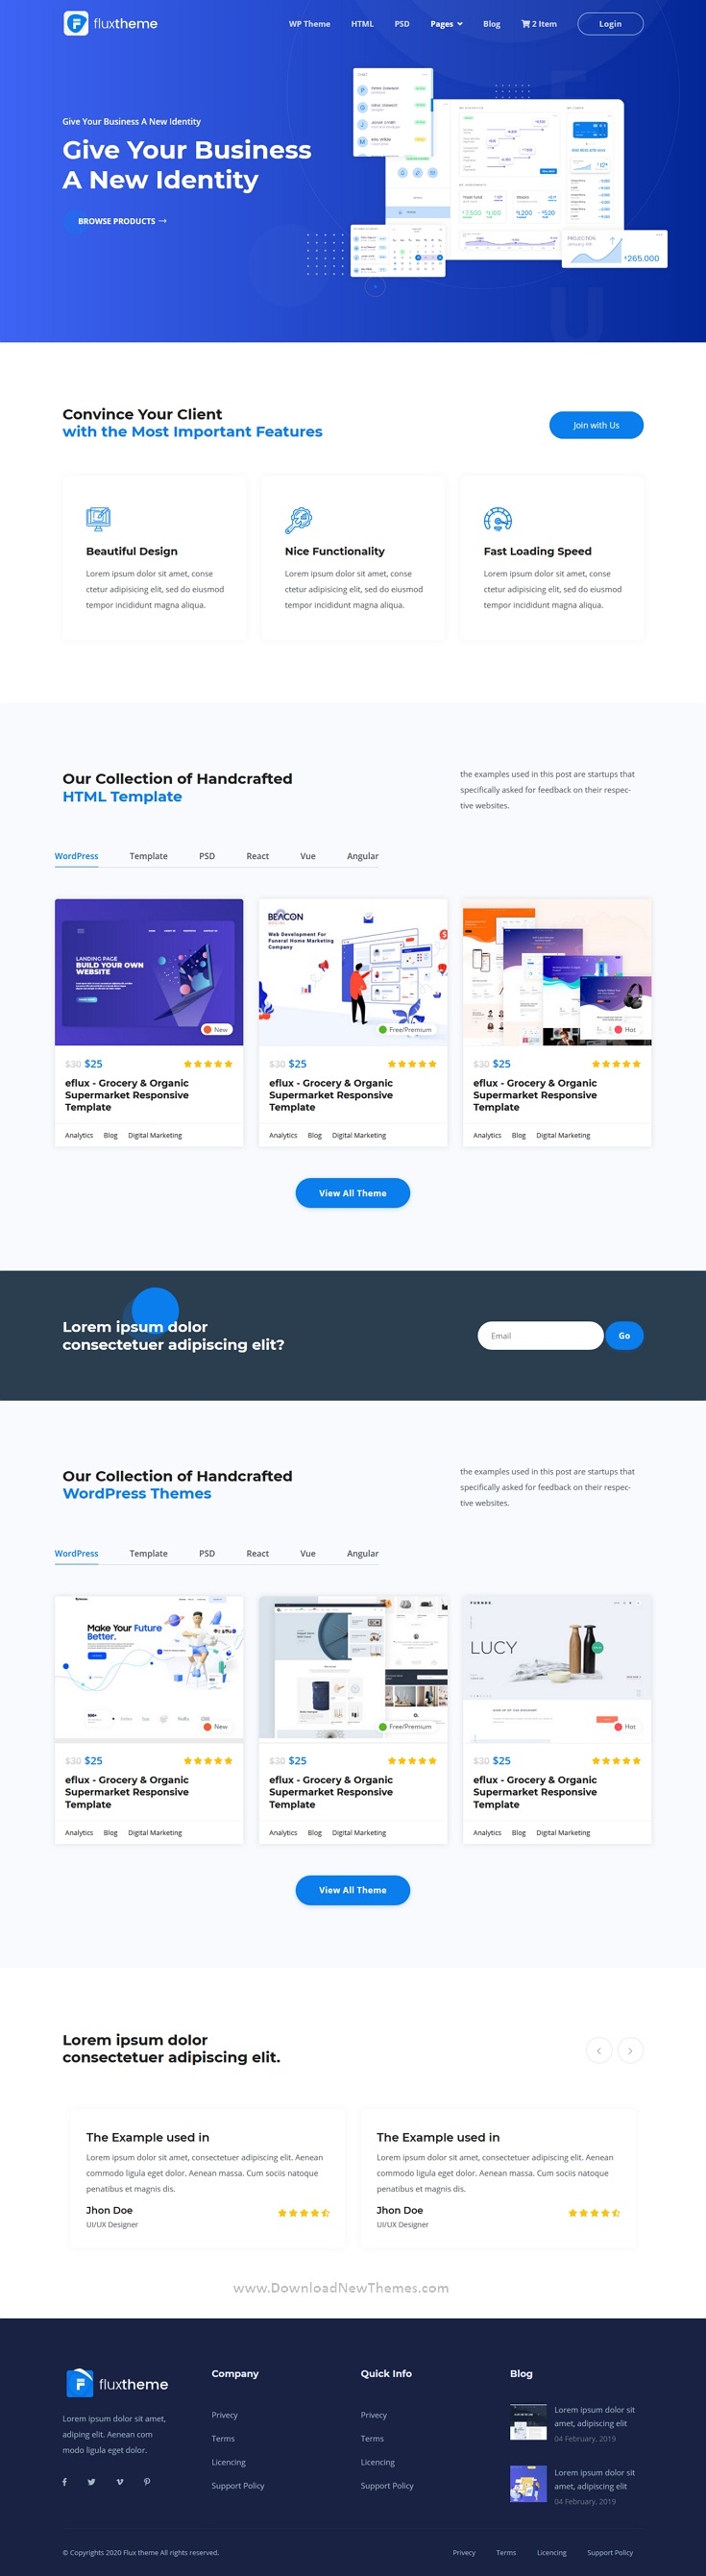 Digital Marketplate and eCommerce HTML5 Template